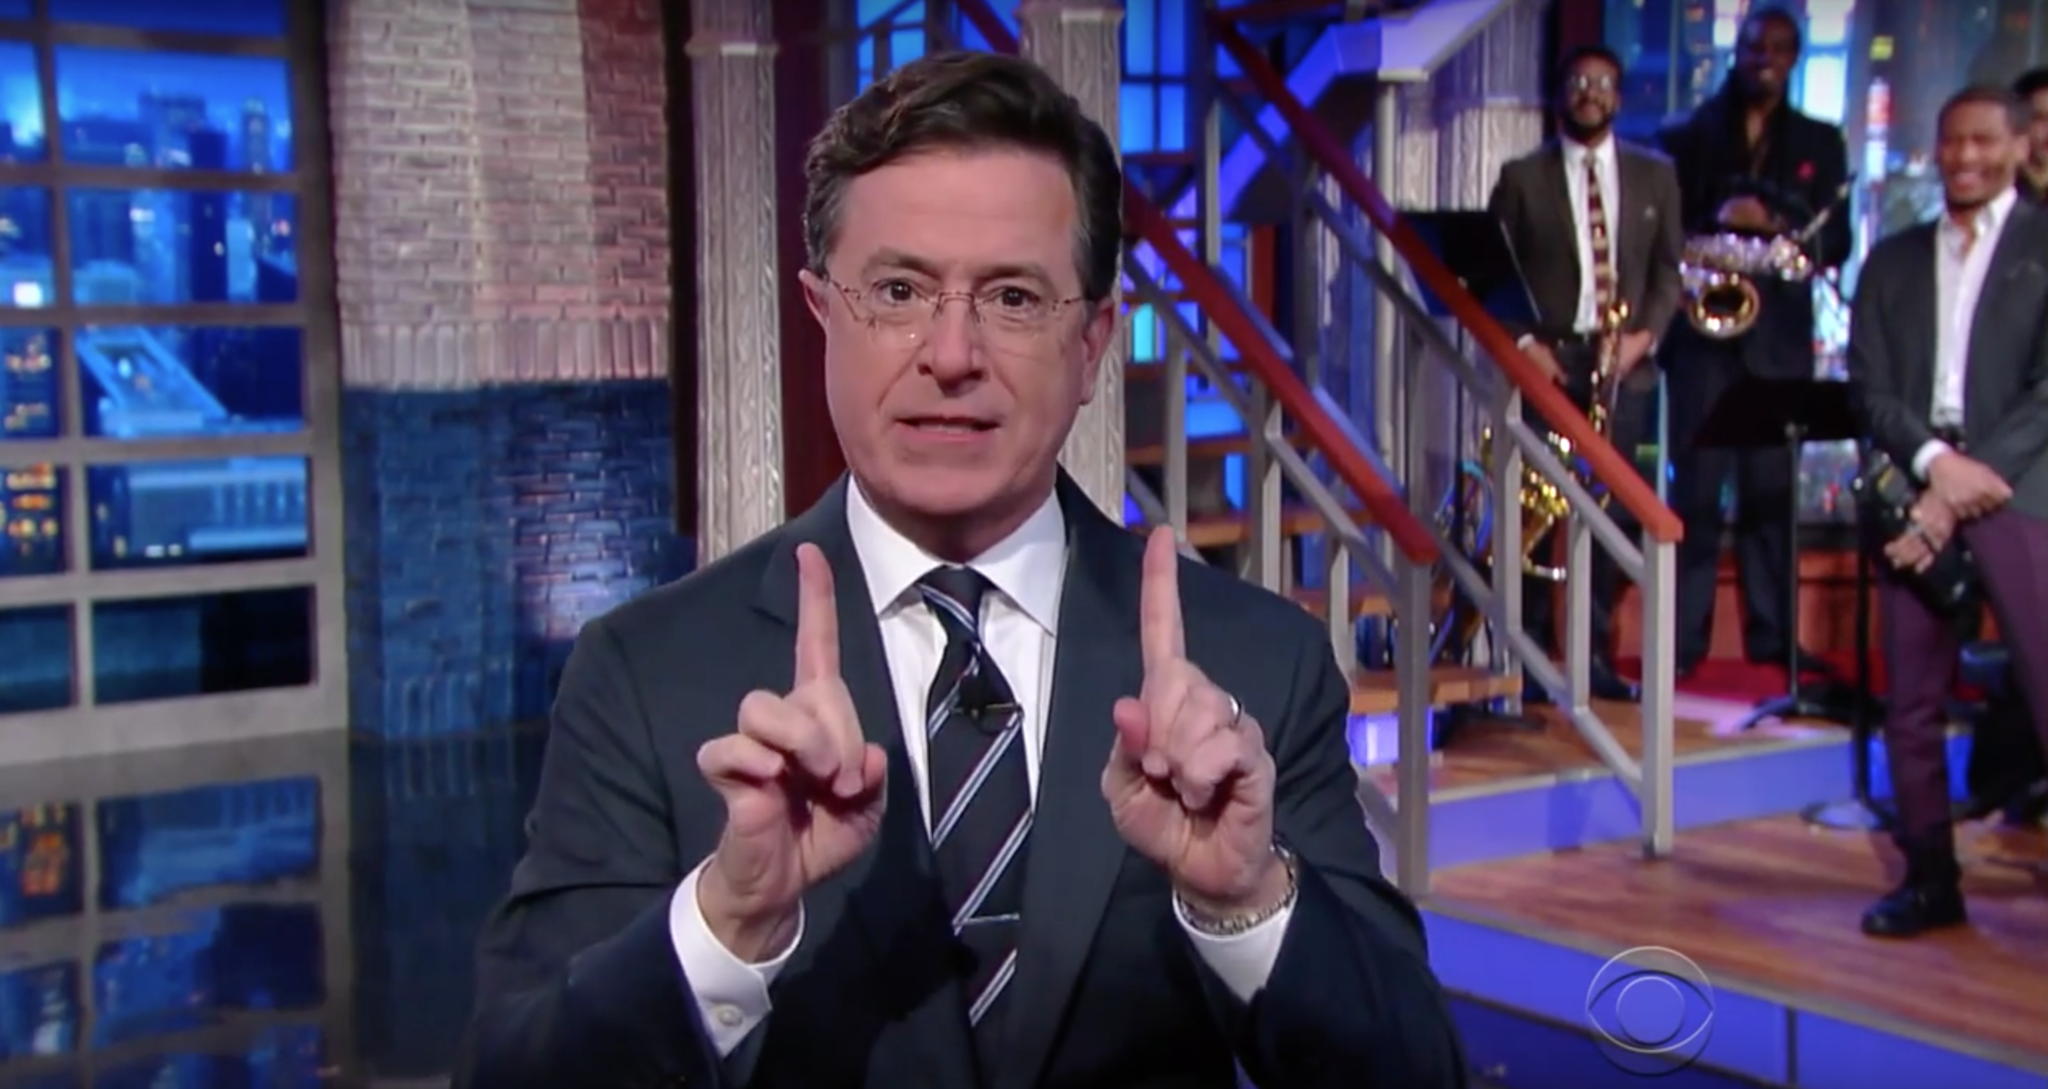 colbert single guys According to a recent survey, the average person goes nearly a full month before washing their bed sheets and single men wait even longer.